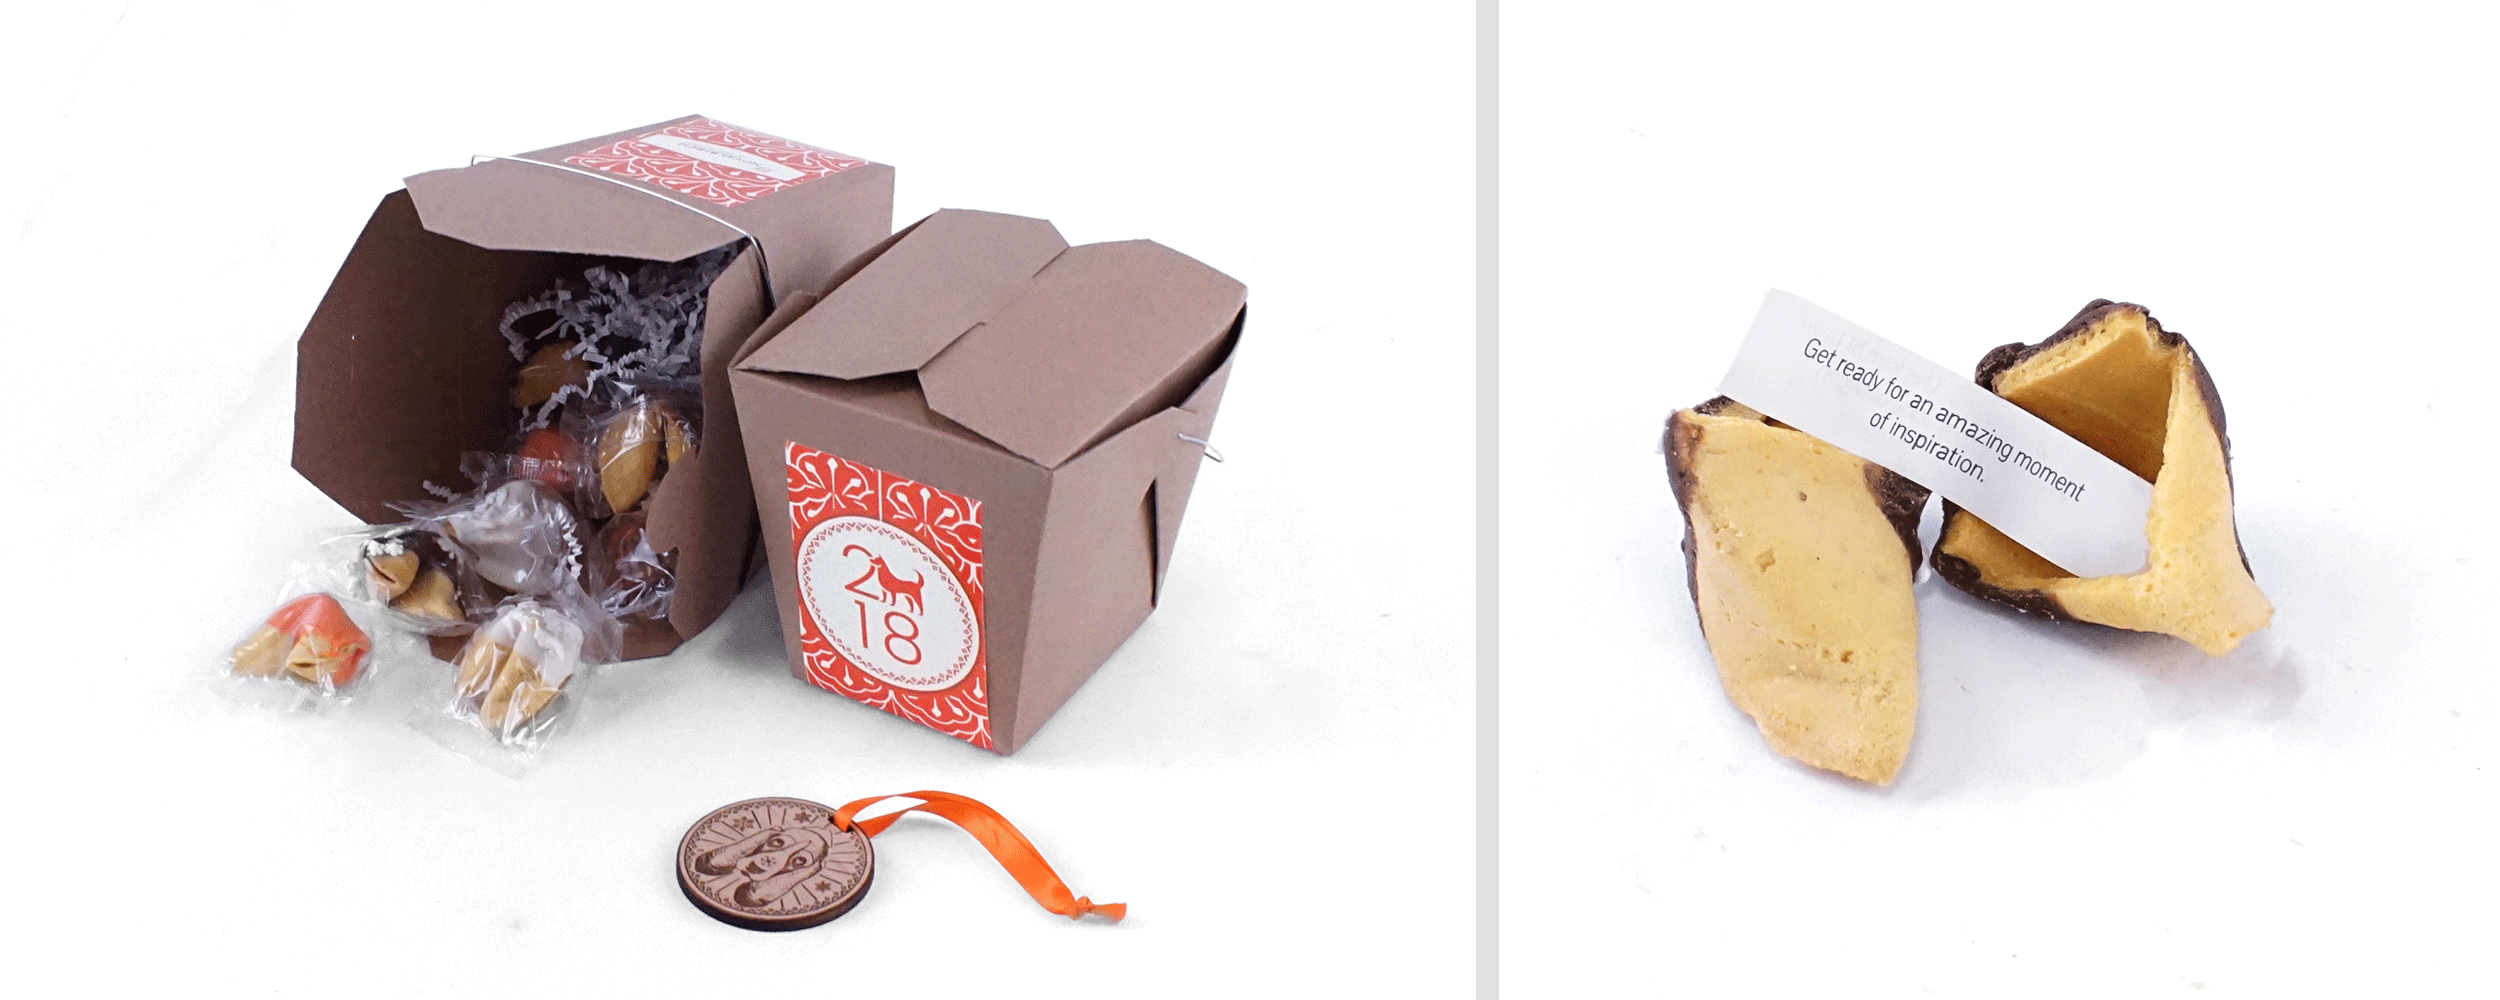 Image of client holiday gift with a takeout box and custom fortune cookie.